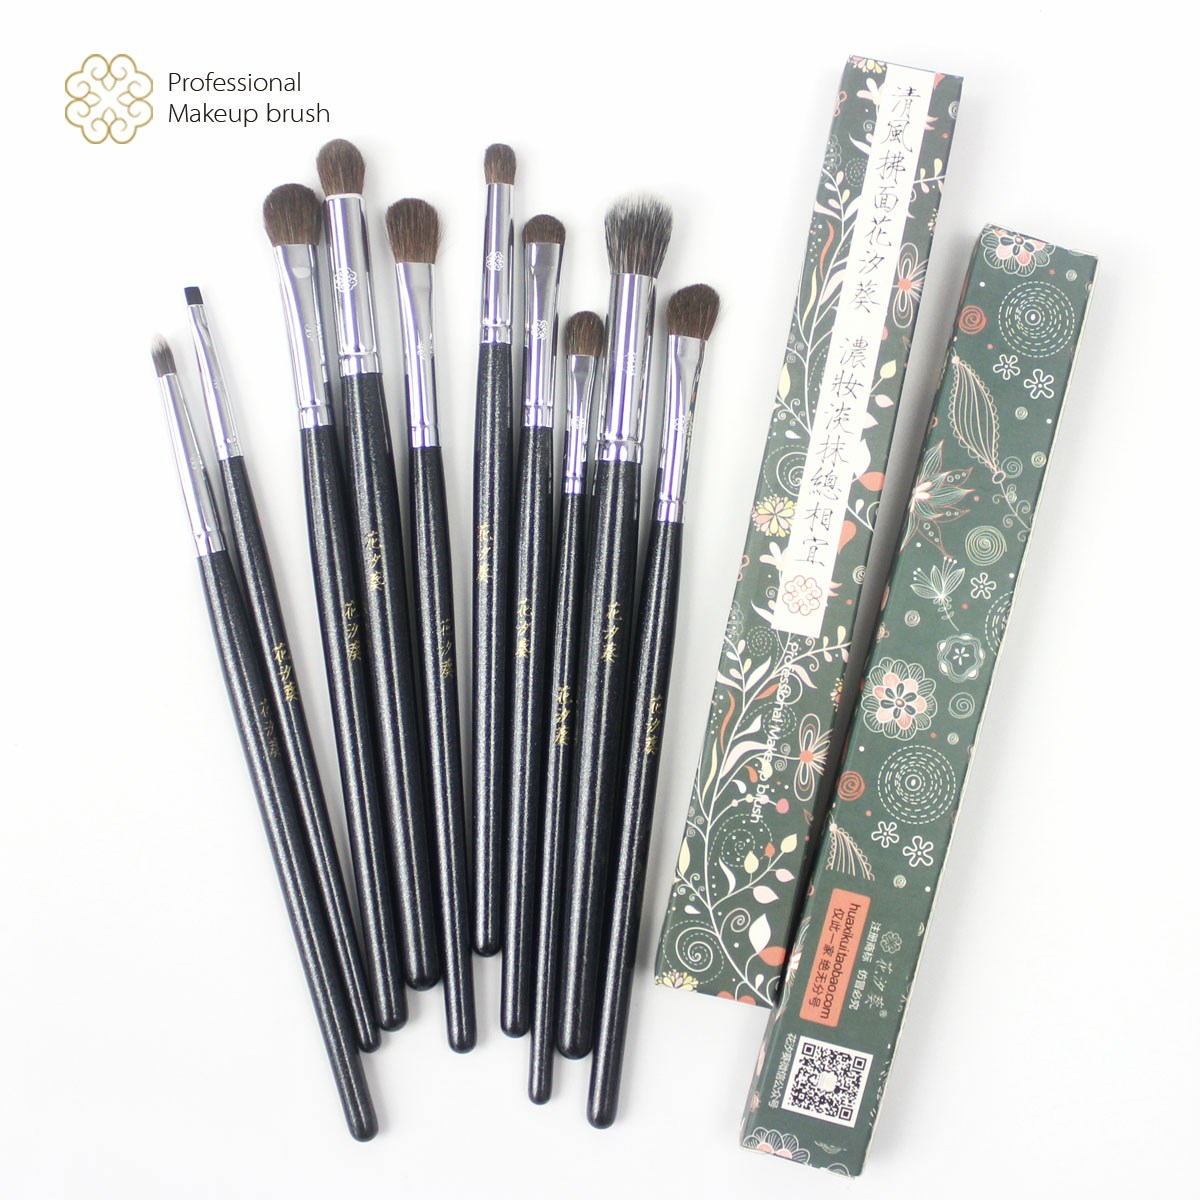 Hua Xi Mo Yun makeup eye liner brush eye shadow brush, dizzy dye brush nose shadow brush, eye brush, Concealer Brush 1 packages.